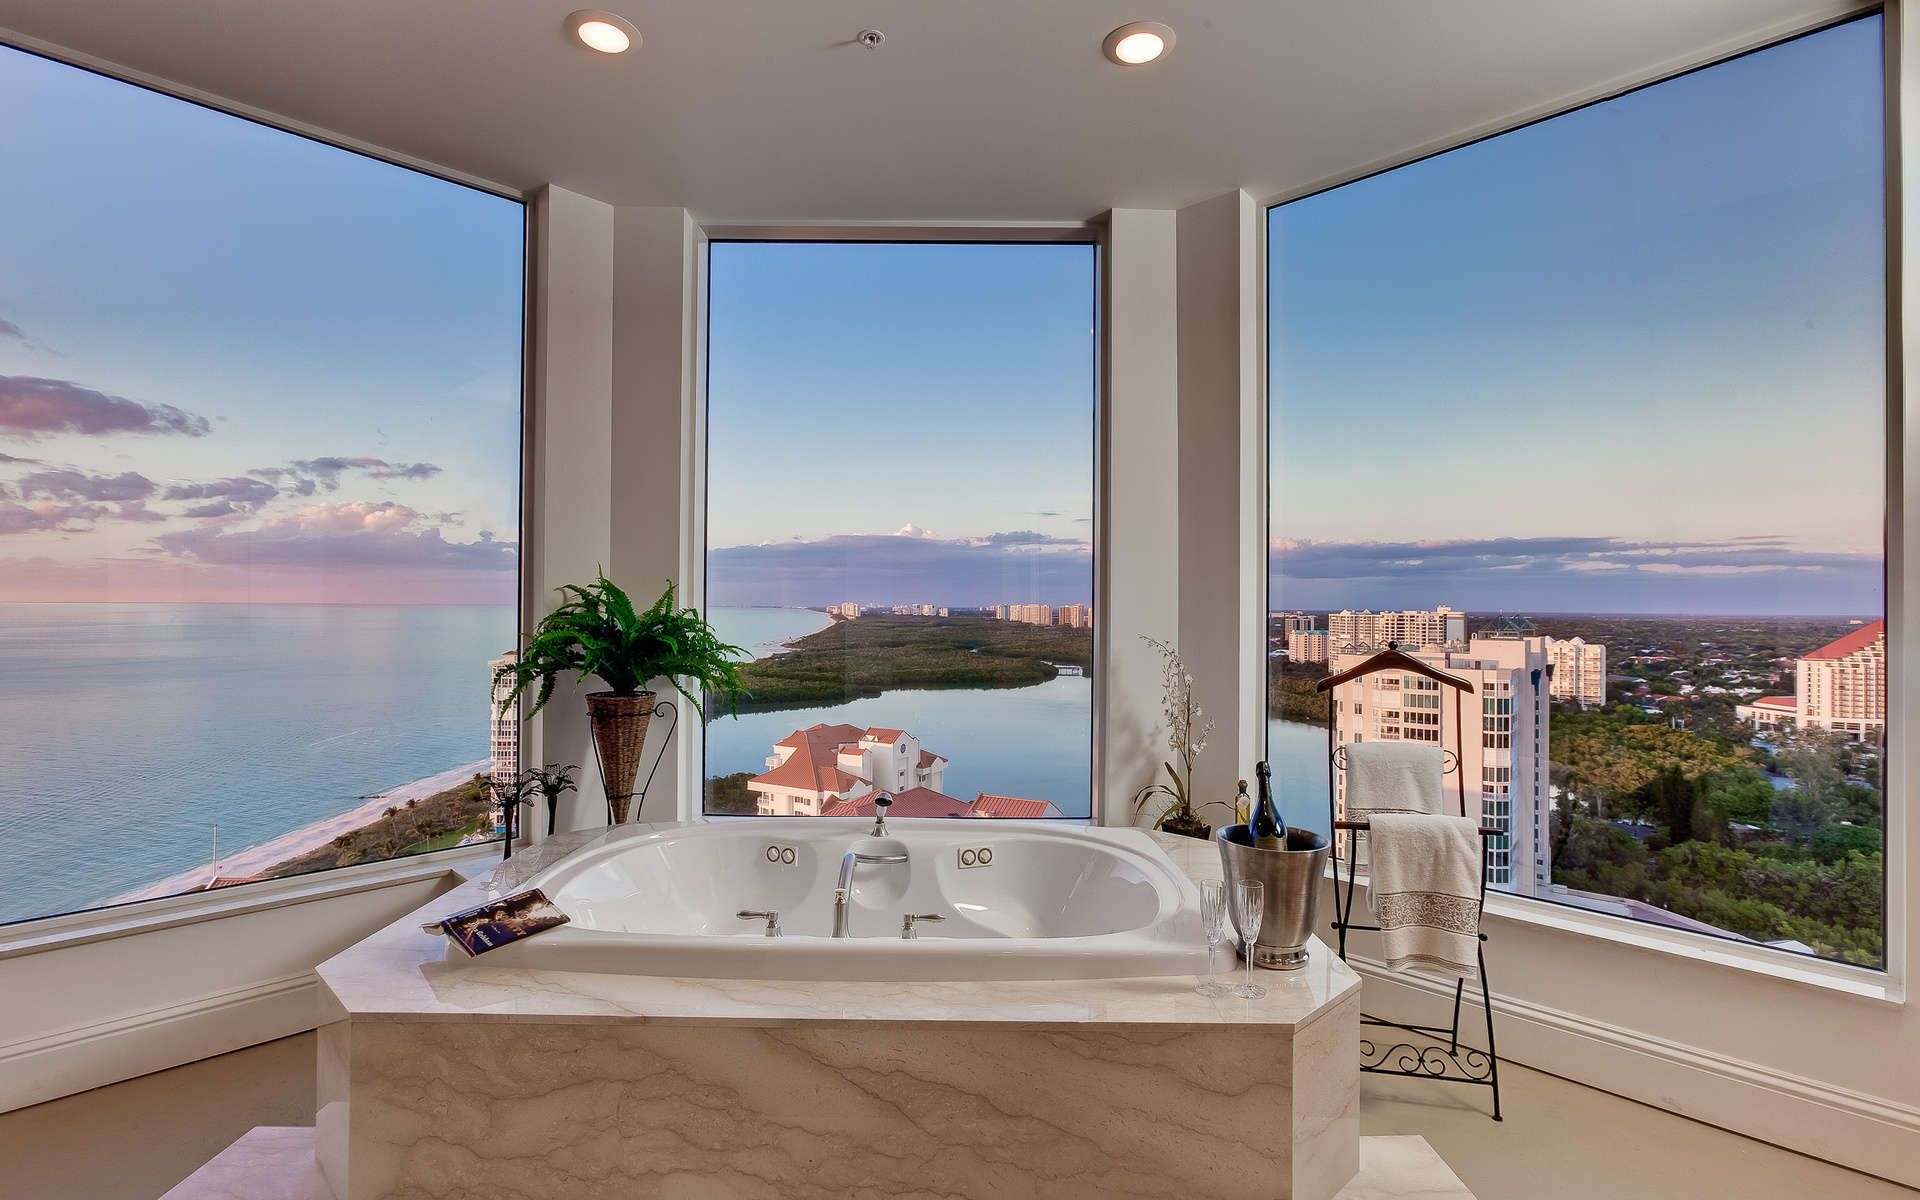 40 Stunning Luxury Bathrooms with Incredible Views Interior work